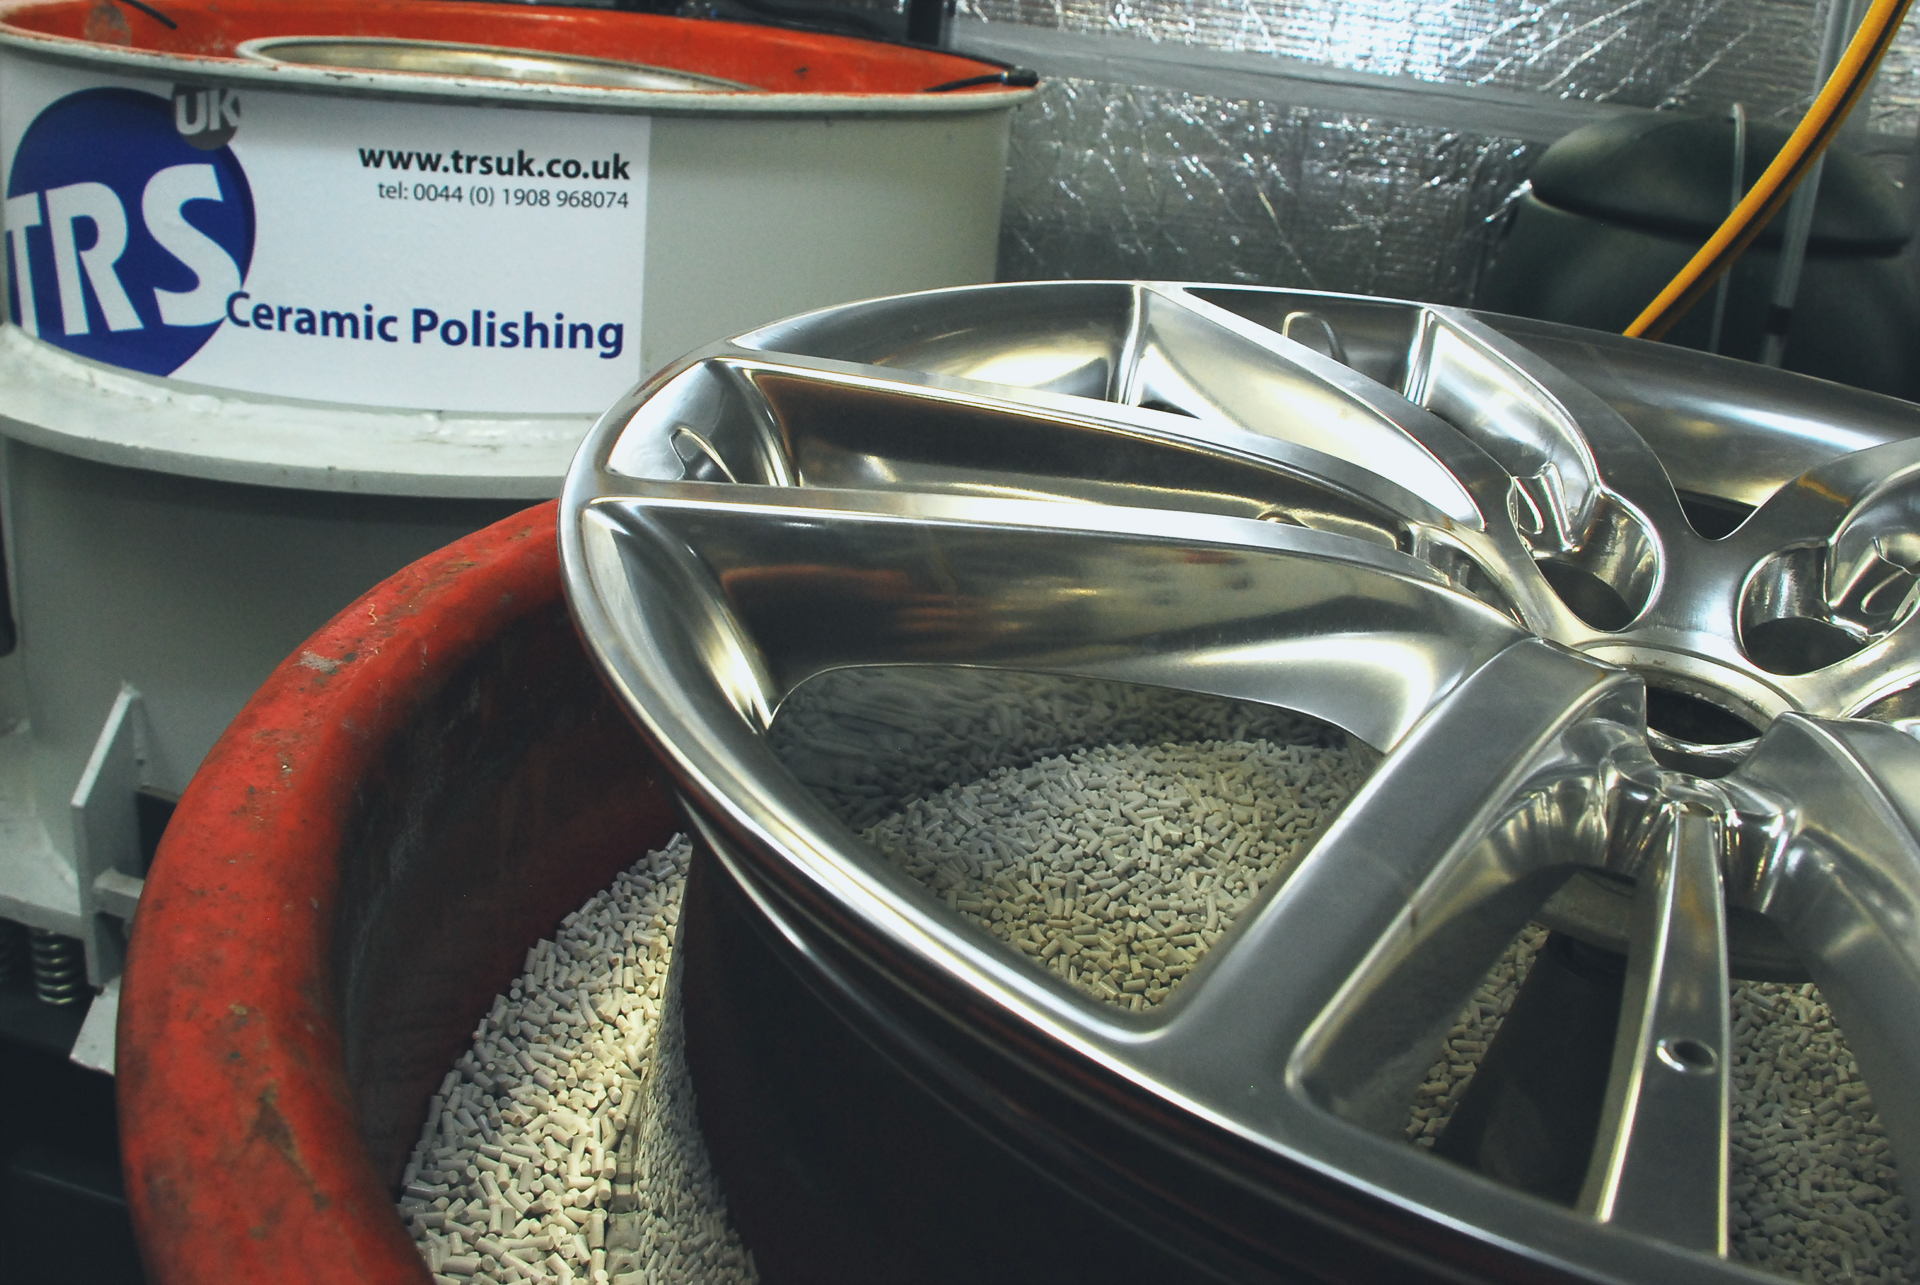 Ceramic Polishing